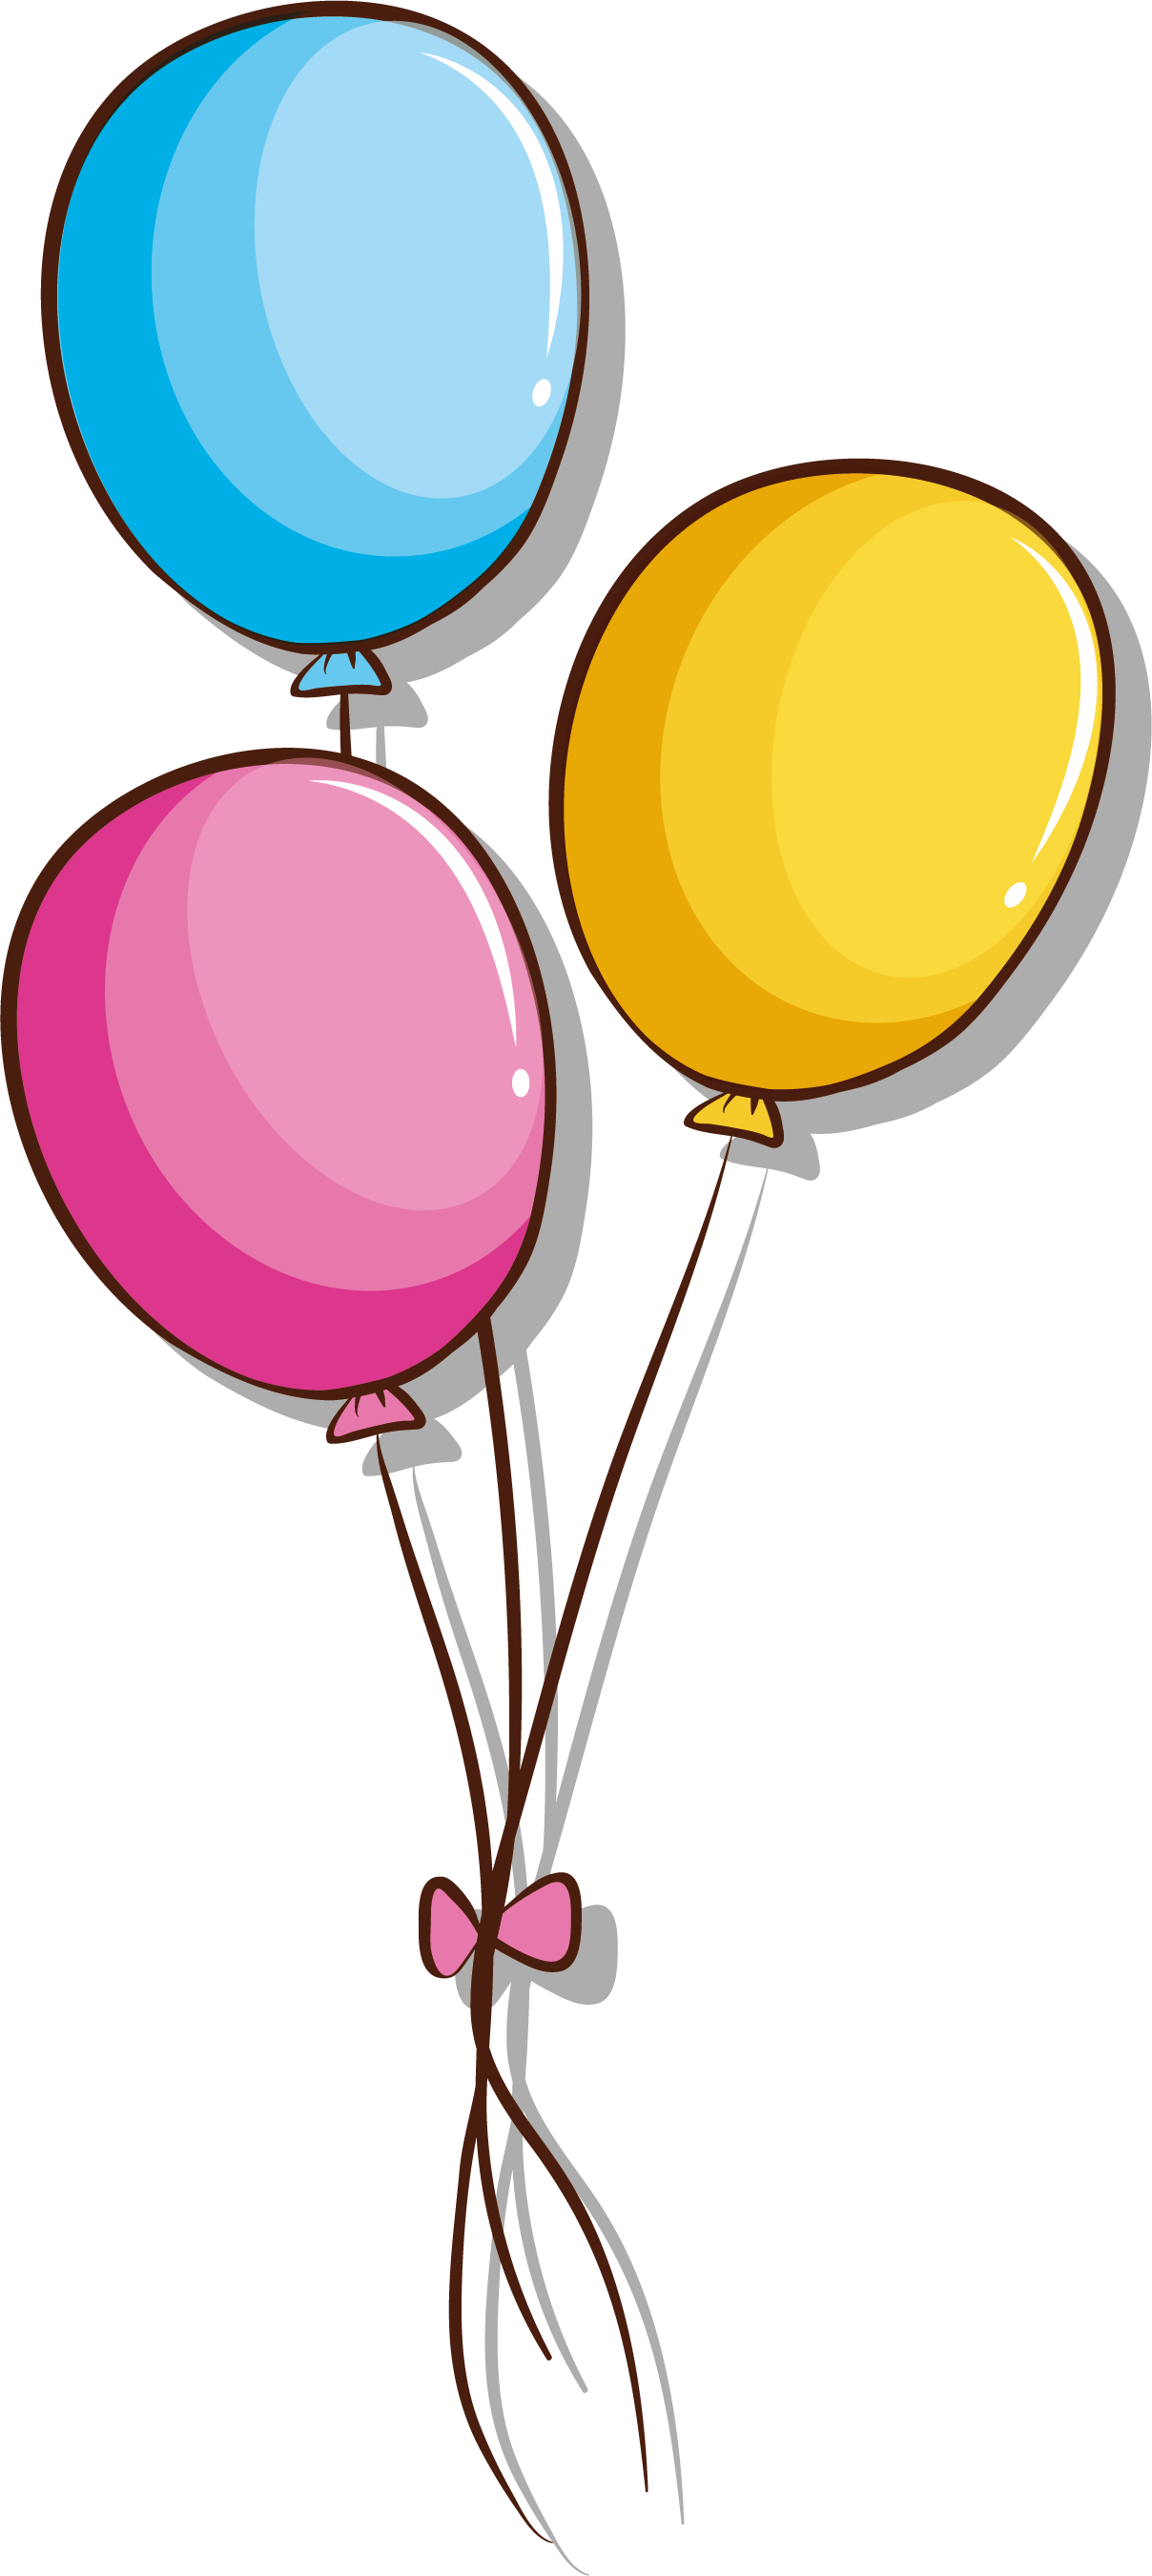 1208x2701 Collection Of Free Balloons Drawing Bunch Balloon Download On Ui Ex